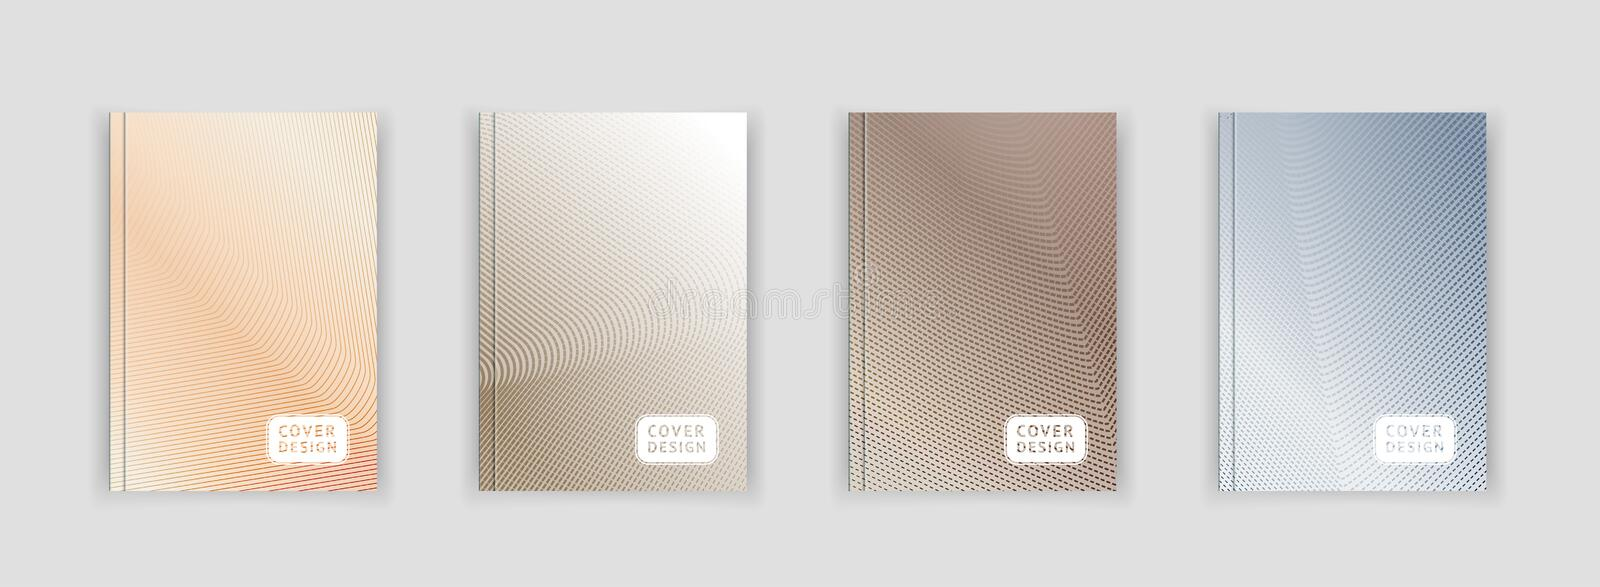 Metal color abstract pattern background with line gradient texture for minimal dynamic cover template design. stock illustration